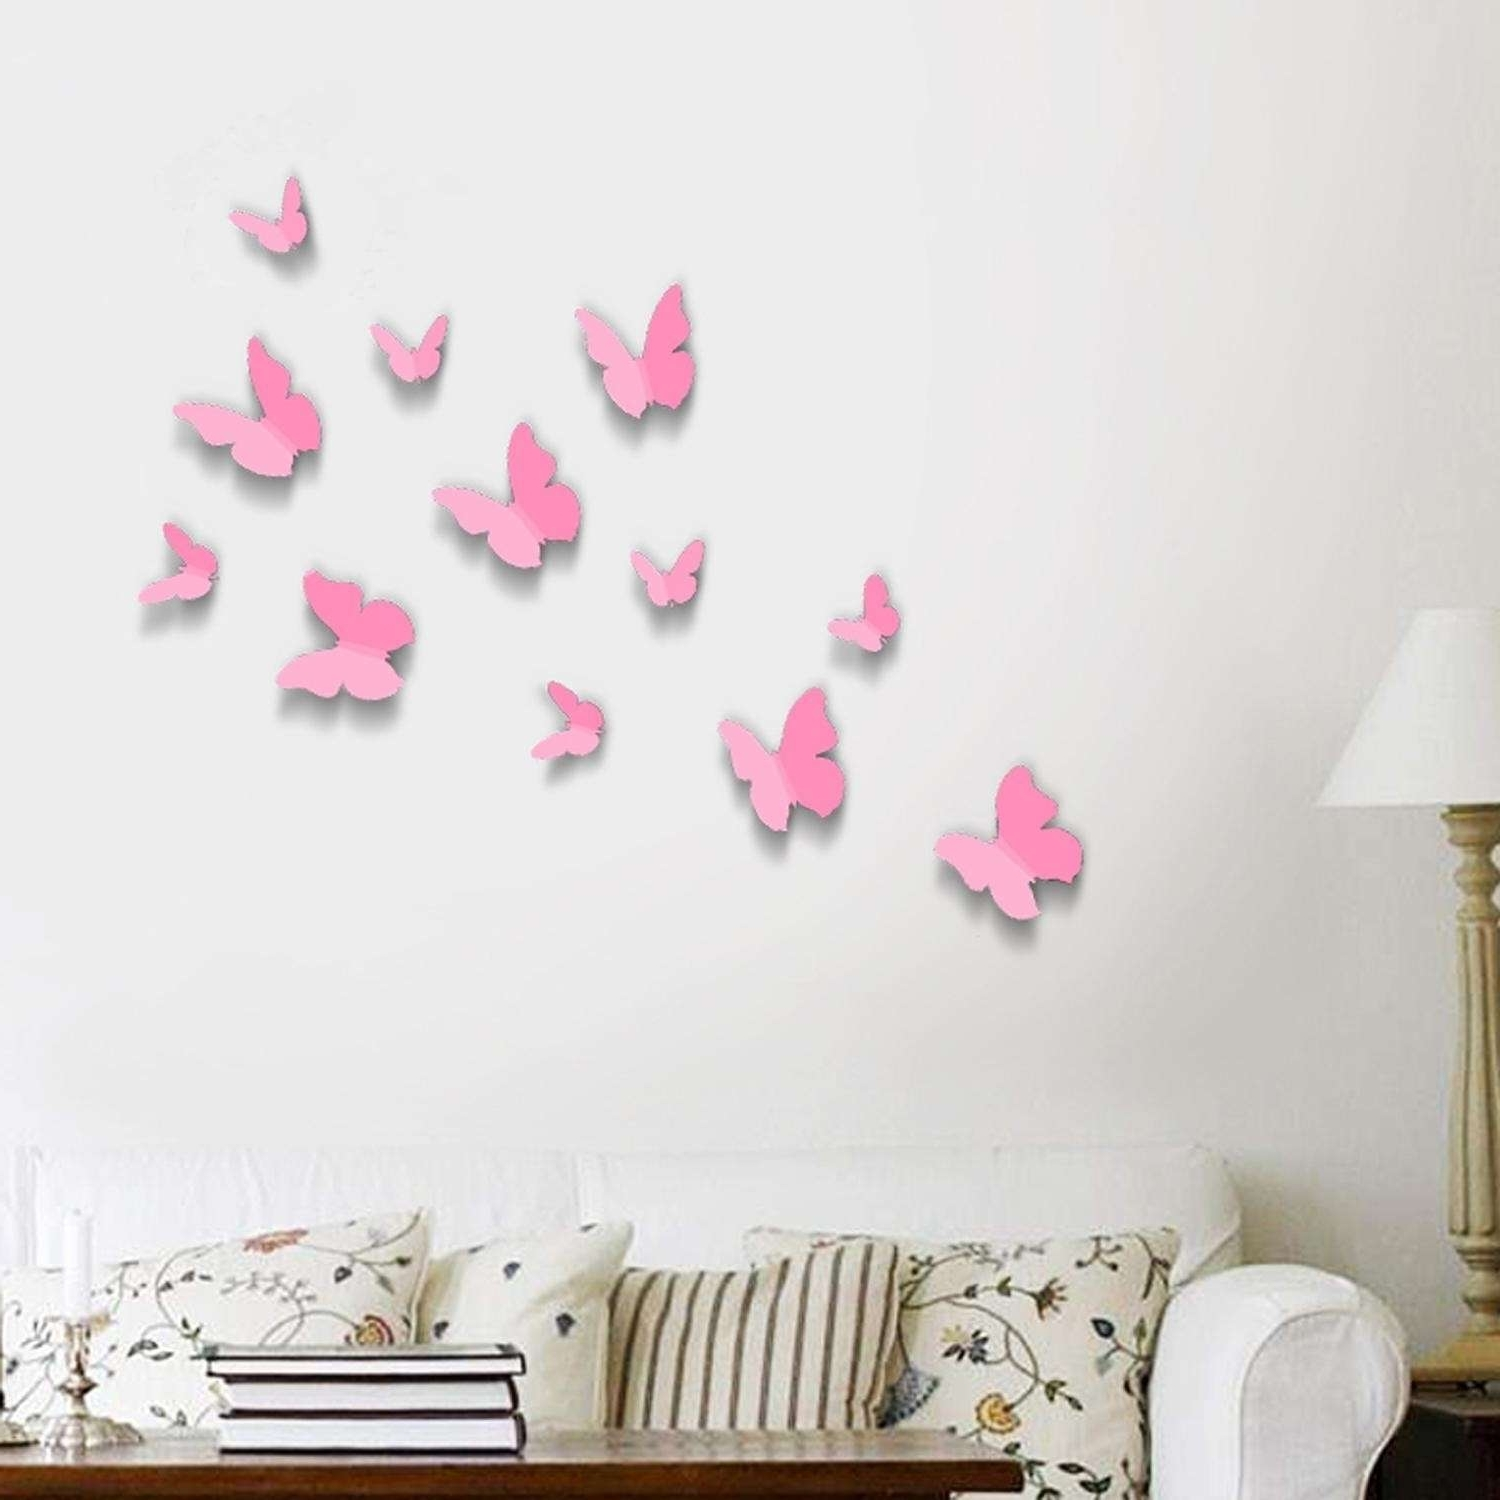 Most Up To Date Butterfly Wall Art In D Butterfly Wall Decor Best Of Best Collection Of Butterflies D Wall (View 7 of 15)